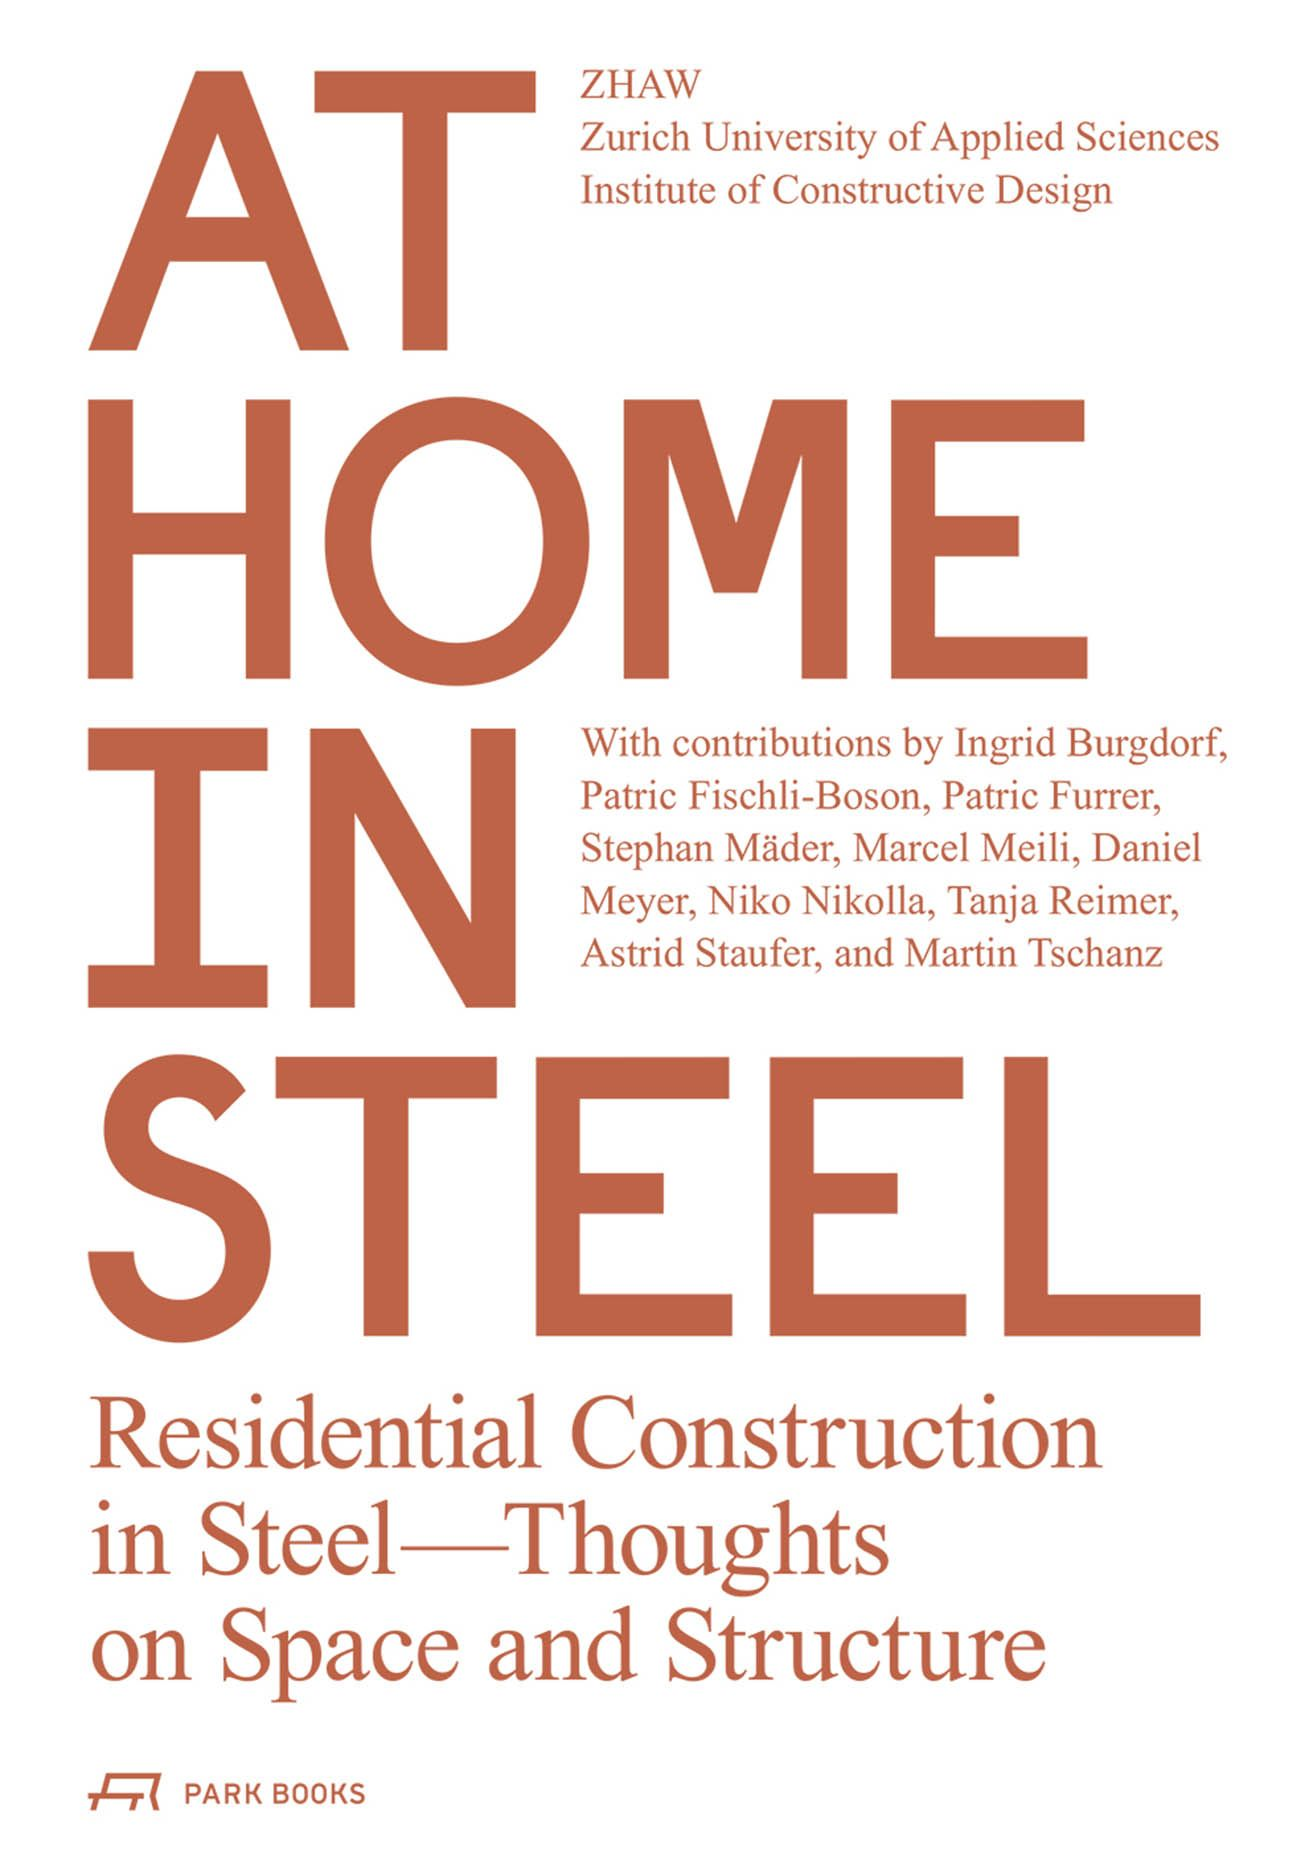 At Home in Steel: Residential Construction in Steel, Thoughts on Space and Structure.